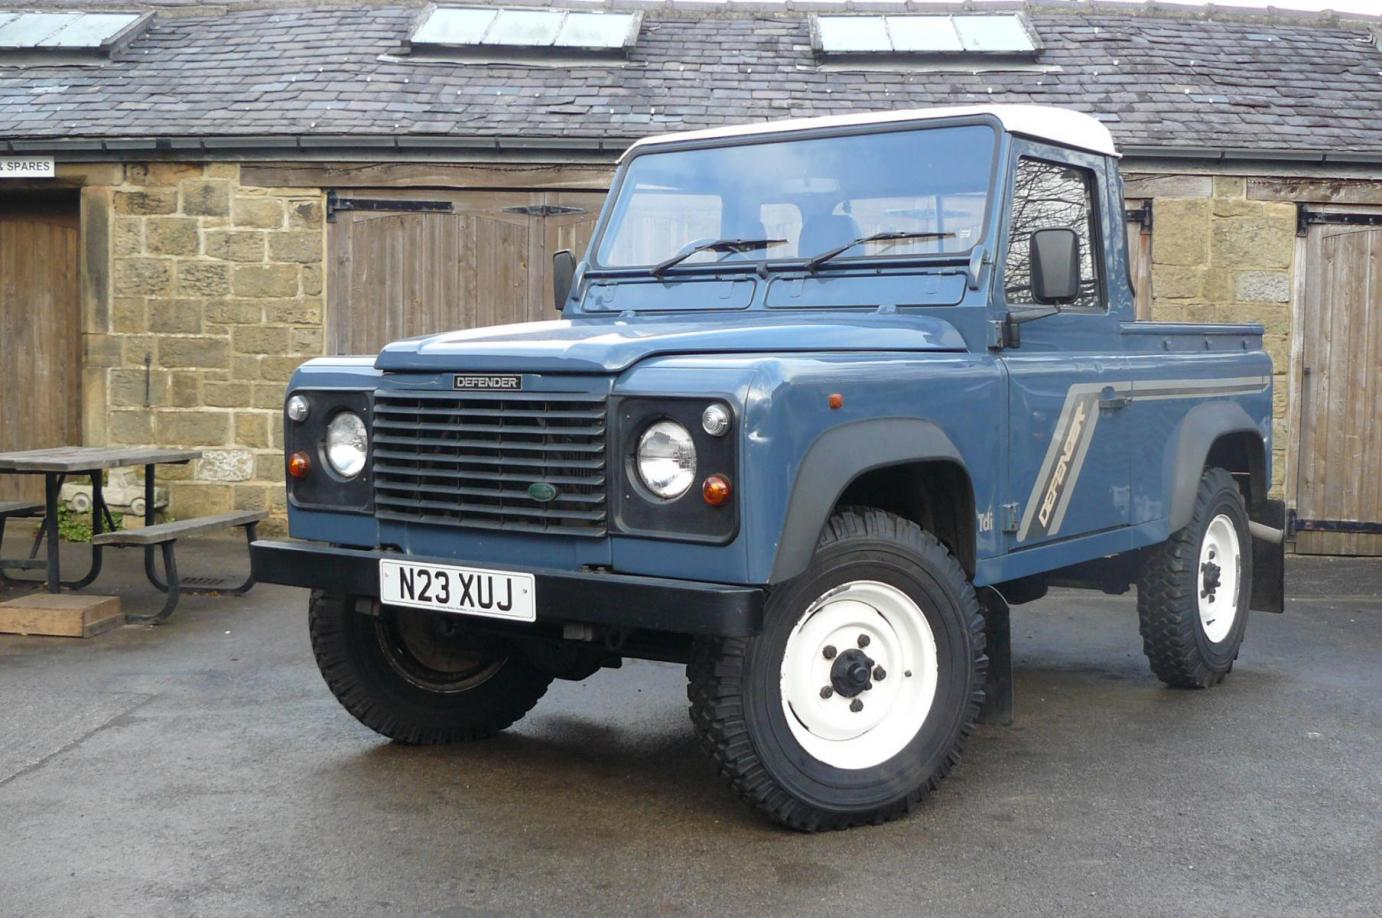 land rover defender 300 tdi with low miles jake wright ltd specialists in land rover and. Black Bedroom Furniture Sets. Home Design Ideas